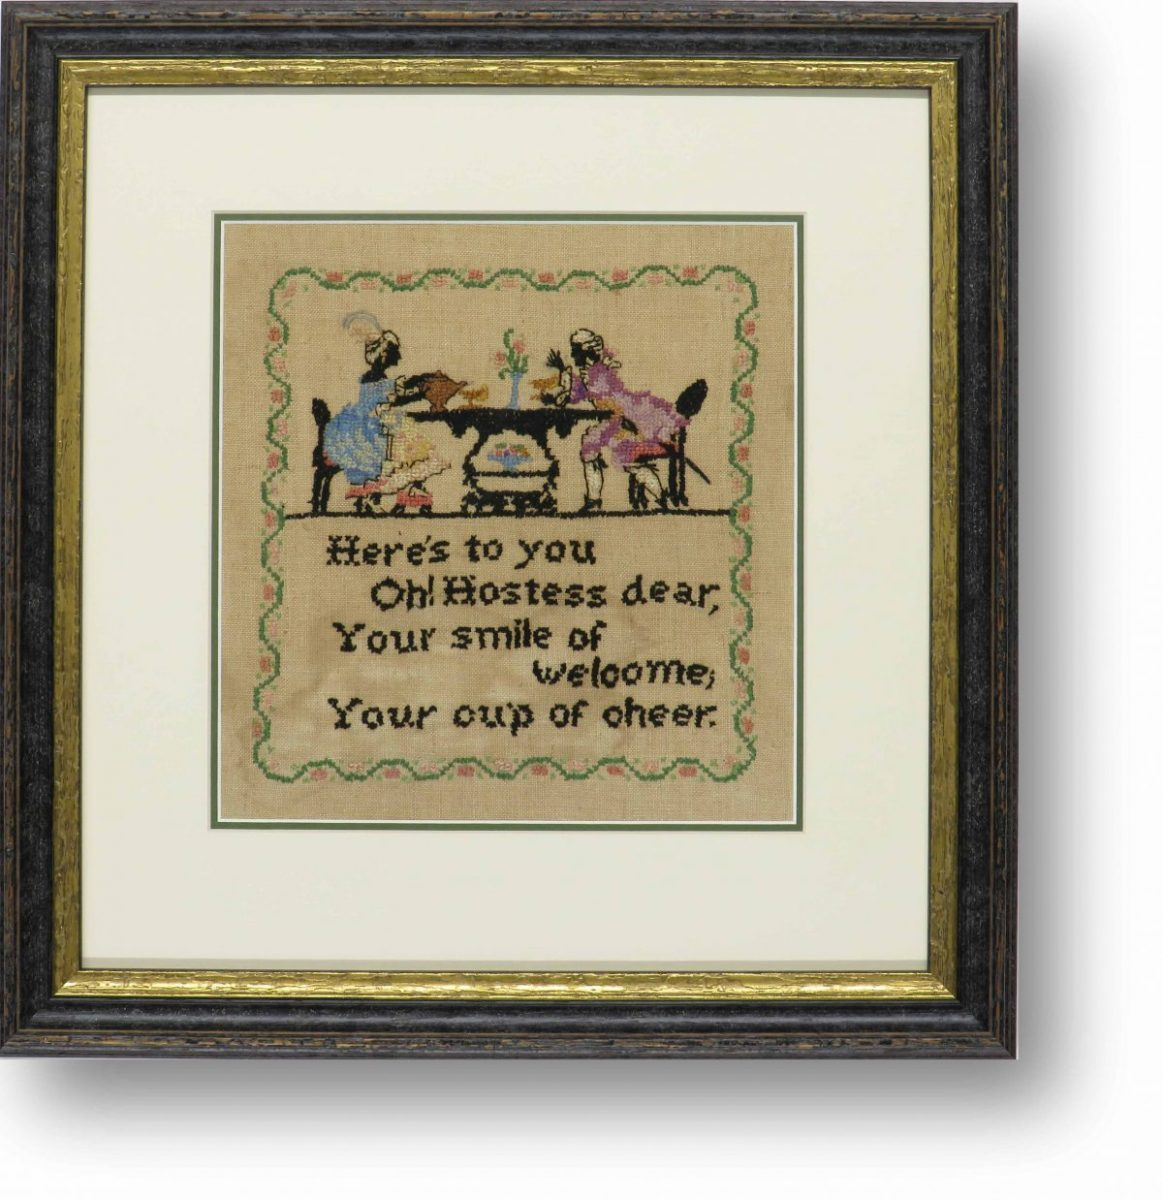 A framed piece of heirloom embroidery in a black and gilt frame